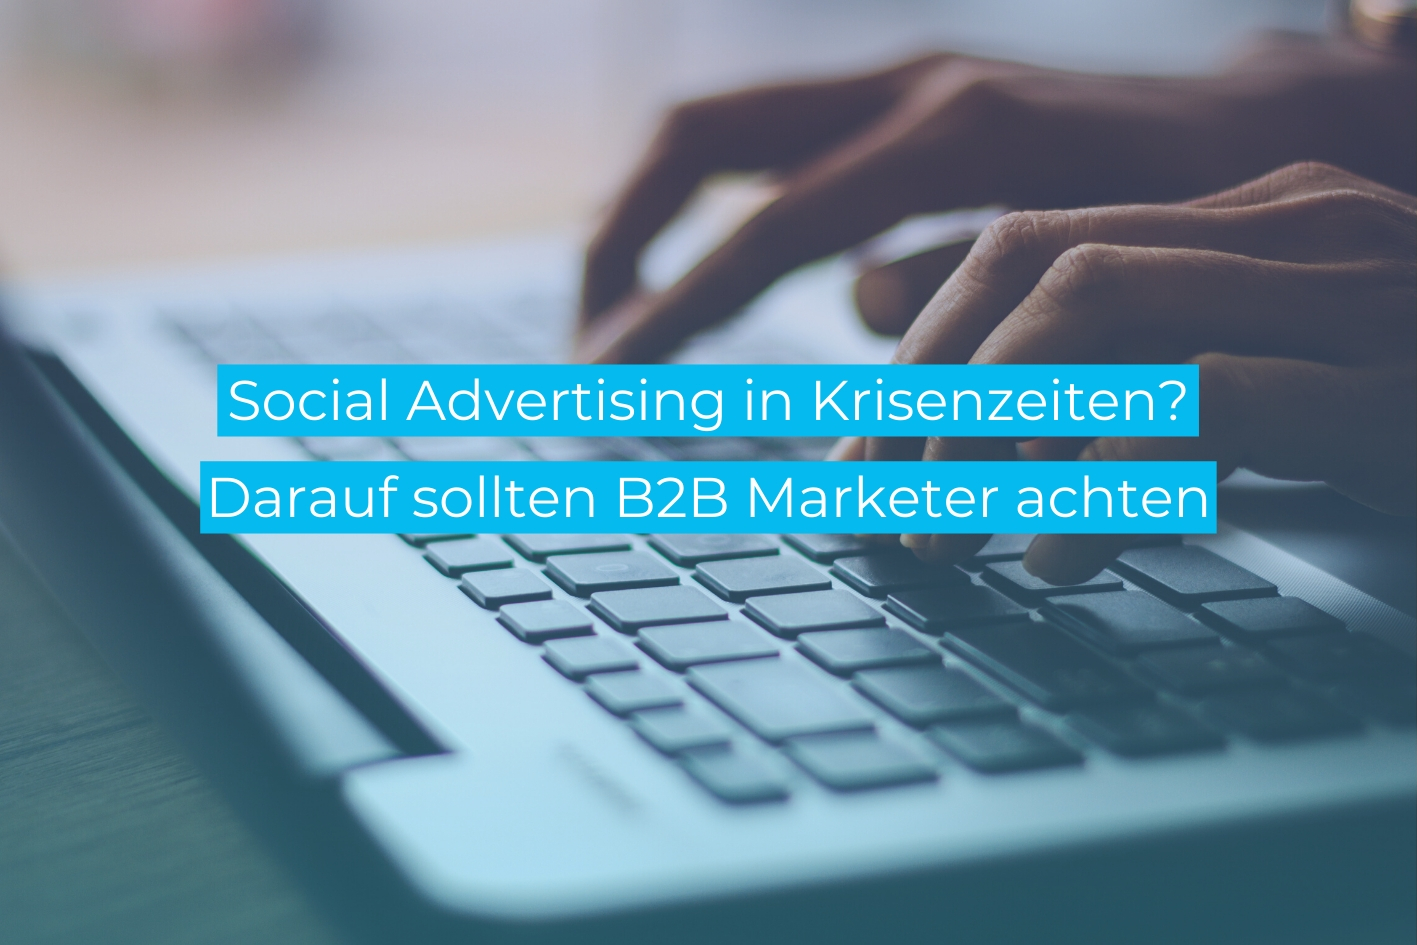 Social DNA B2B Social Advertising in Krisenzeiten